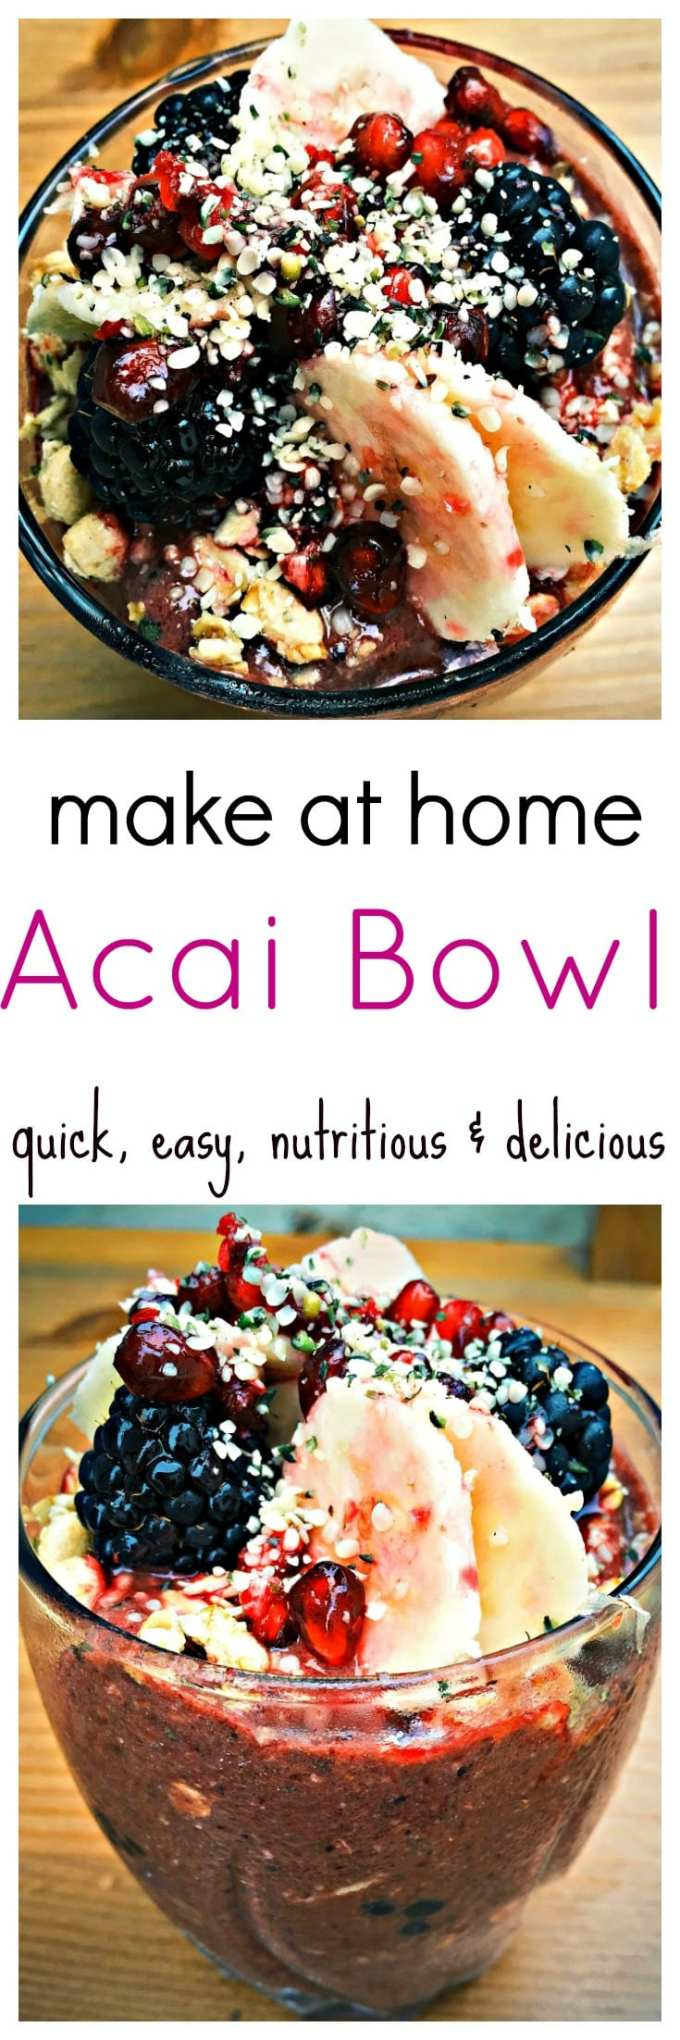 This little bowl of açaí superfood is a powerhouse of goodness. Great for a pick me up or just as a healthy snack to keep you going for the afternoon.